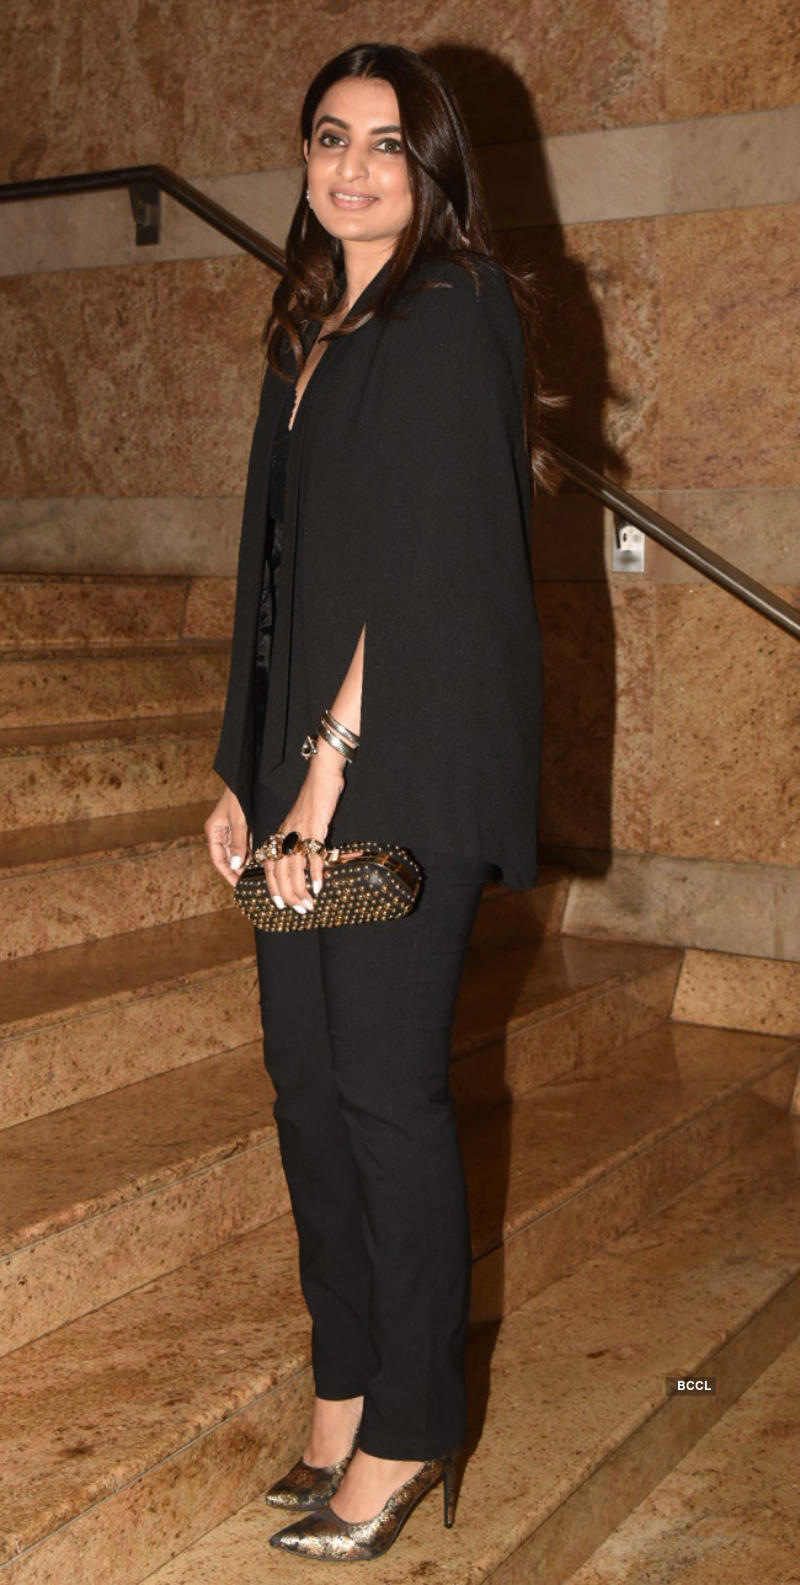 Bollywood divas glam-up the 20 years celebration of Sabyasachi Mukherjee in fashion industry